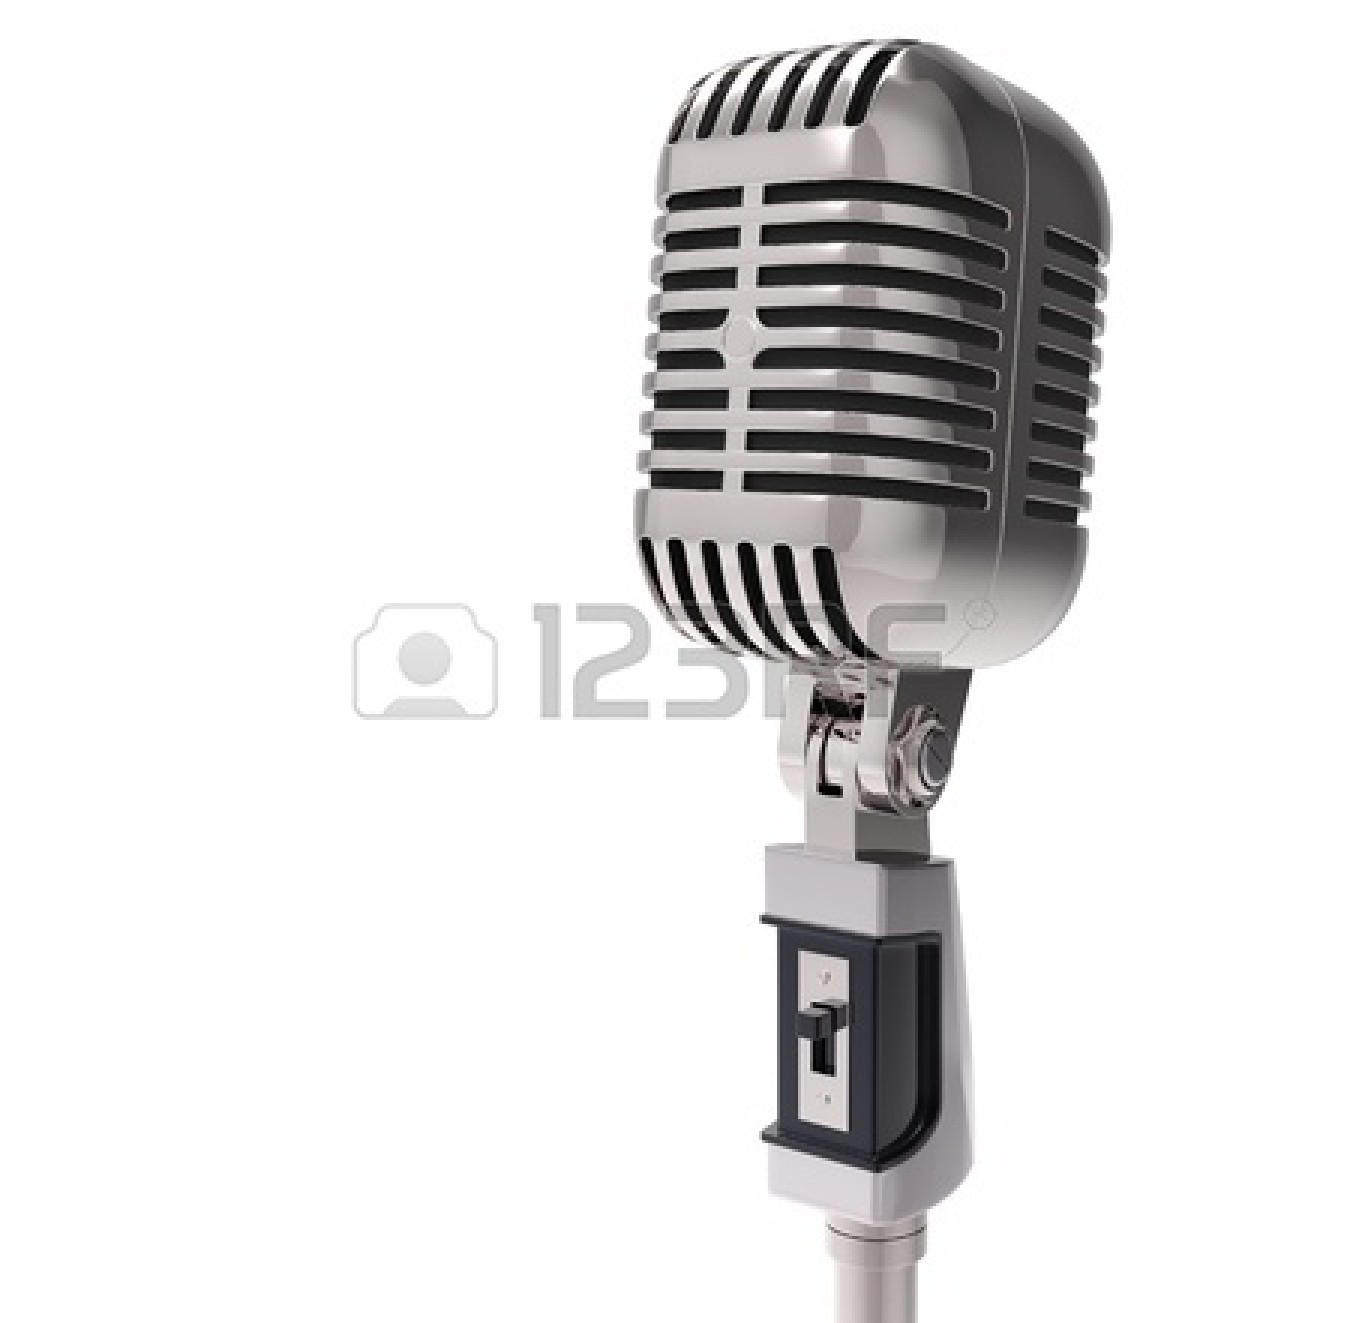 Vintage Microphone Black And White | Clipart Panda - Free ...